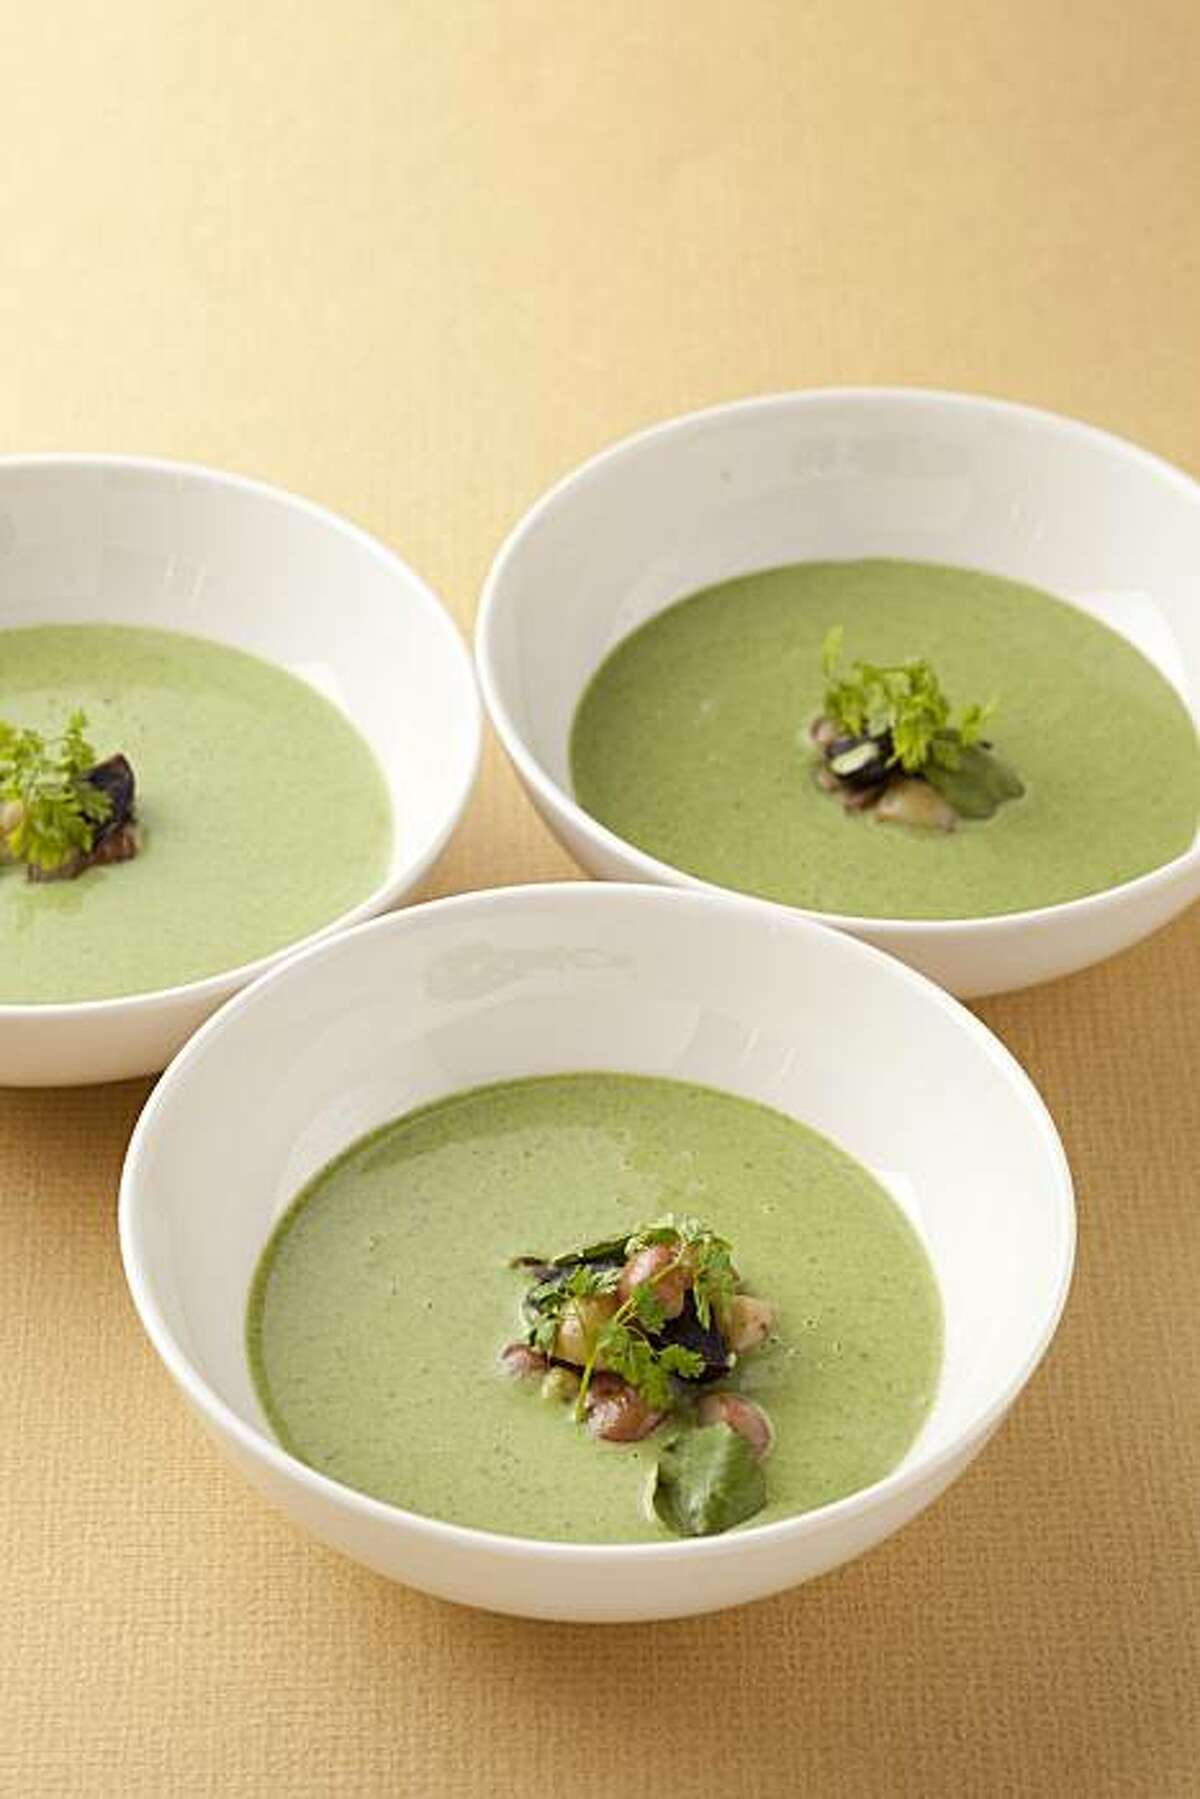 Wild nettle and green garlic soup, smoked potatoes, Meyer lemon (Charlie Parker, Plum restaurant) as seen in San Francisco, California, on February 2, 2011. Food styled by Lynne Char Bennett.